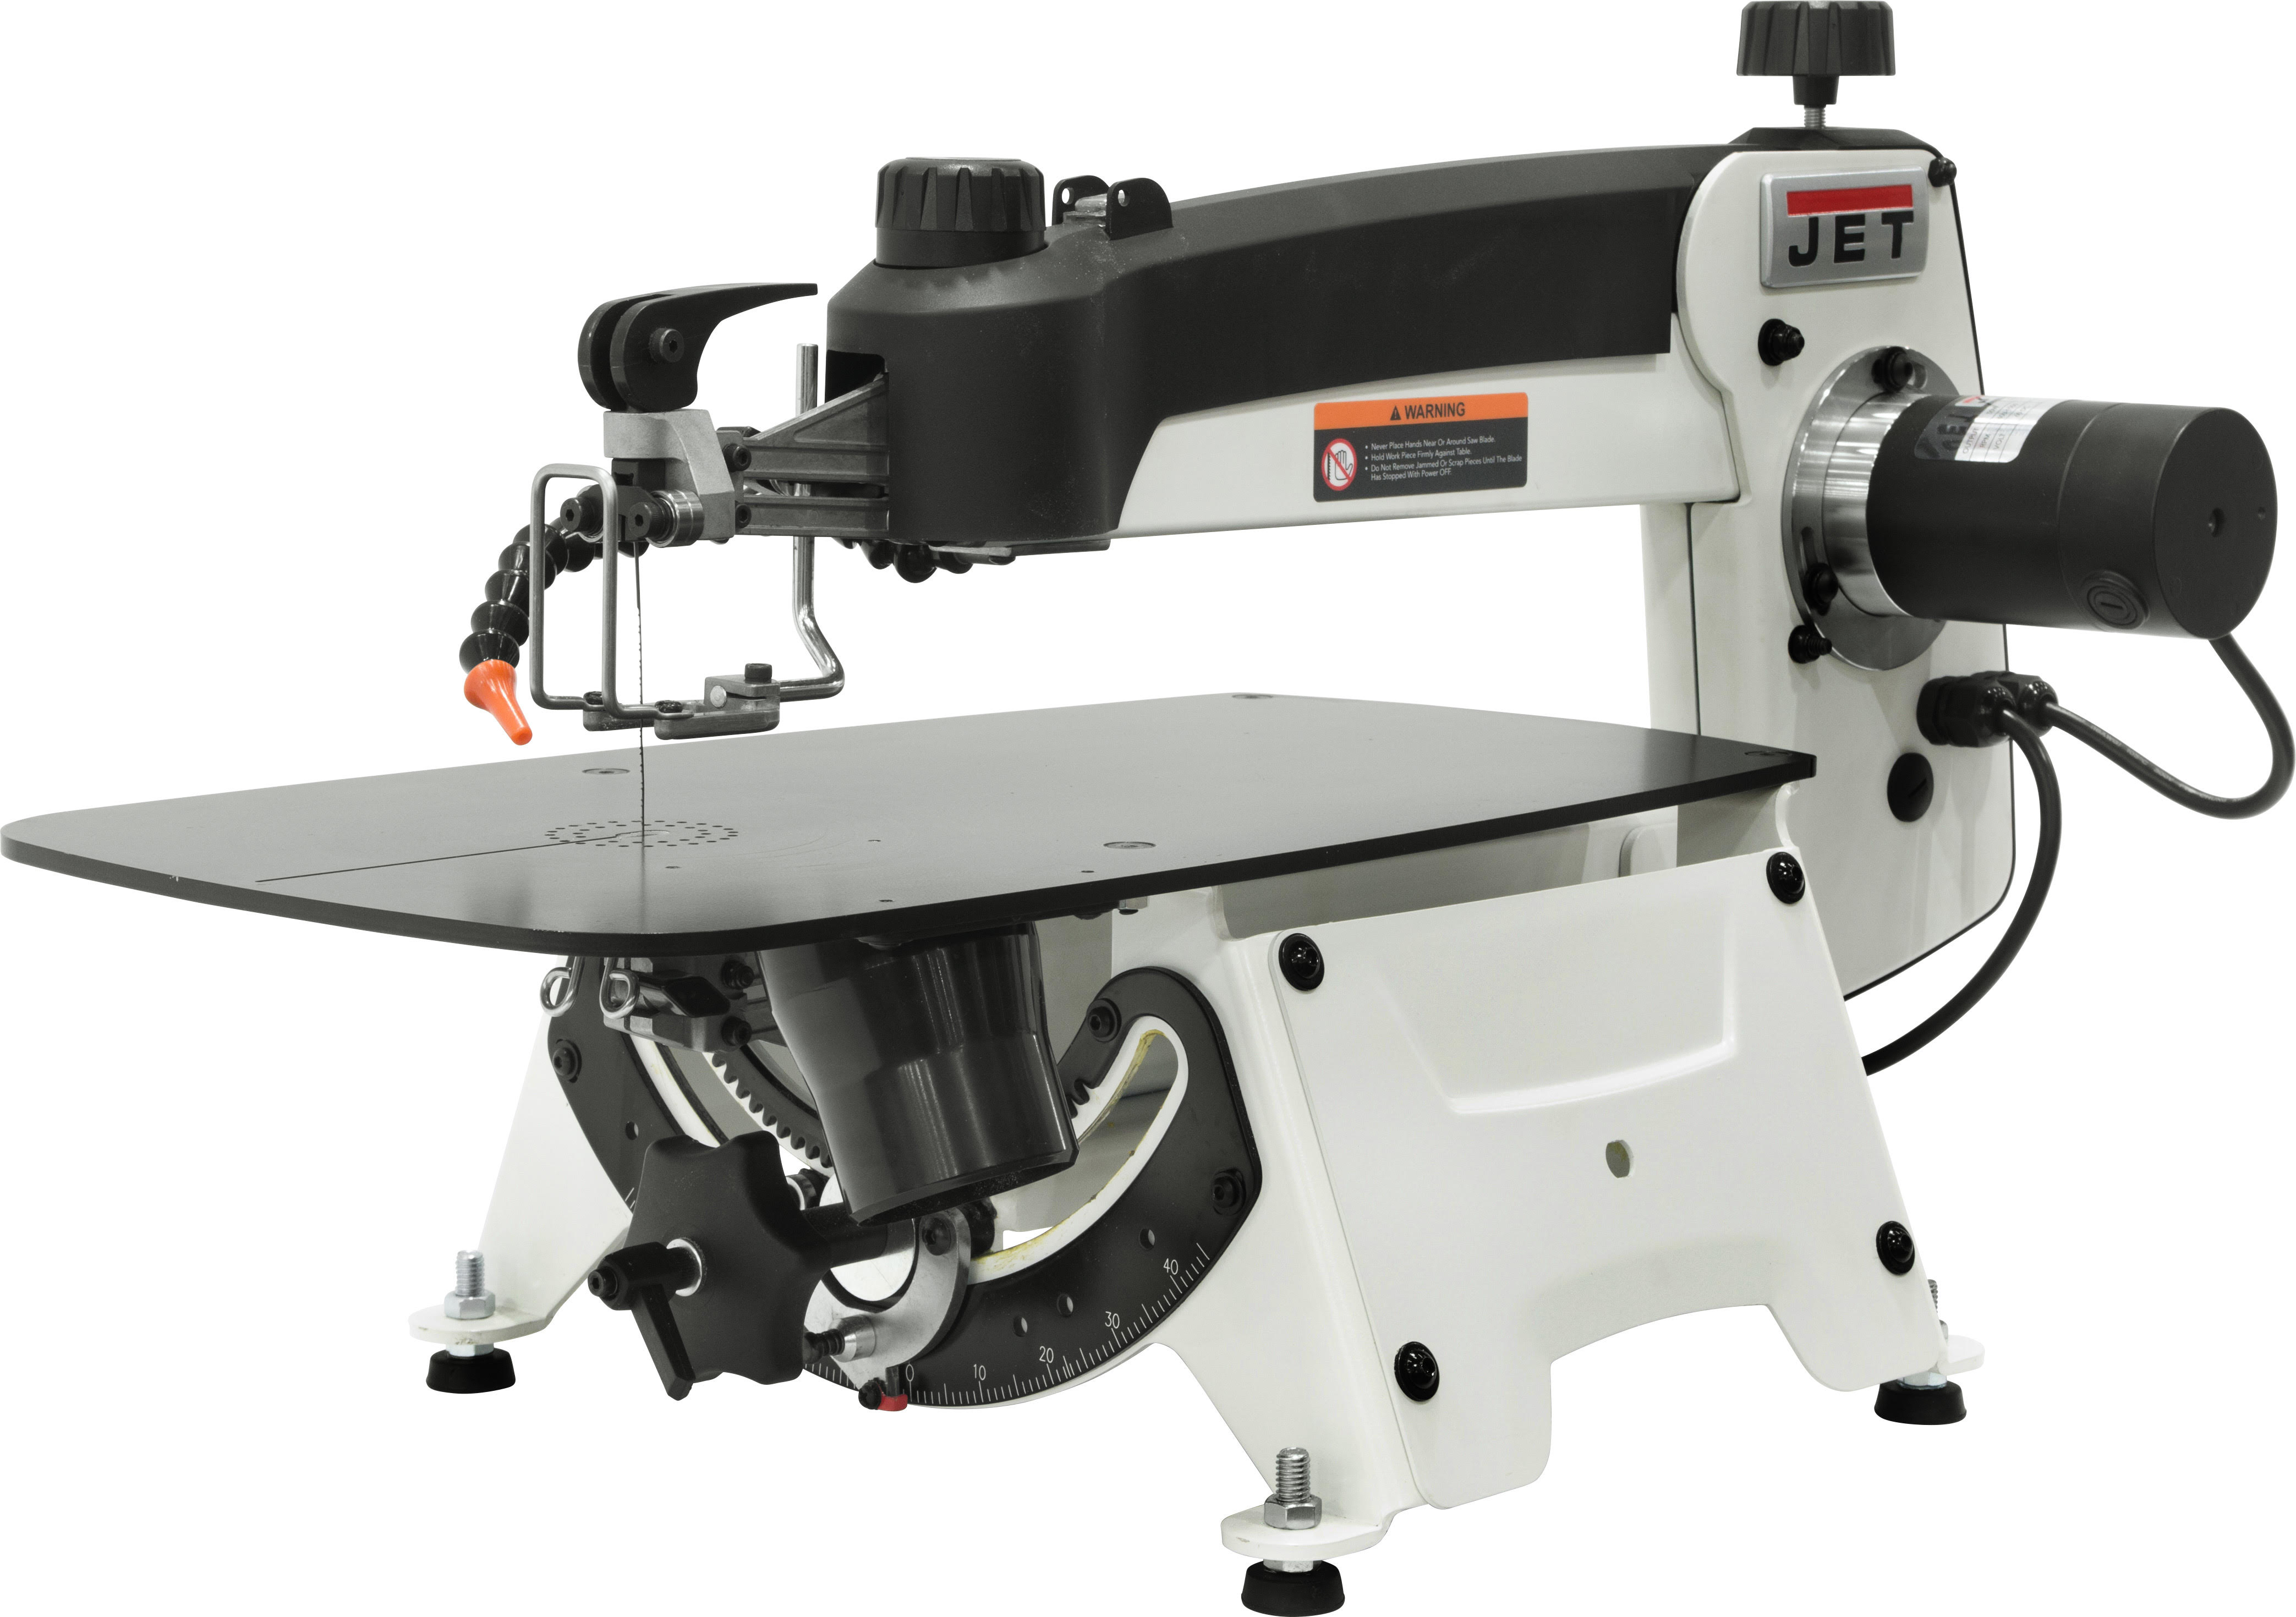 New jet 18 inch scroll saw features one step blade changetensioning the new scroll saws other features include an easily removable lower blade holder extra large slotted table 18 in throat capacity and top lift keyboard keysfo Image collections